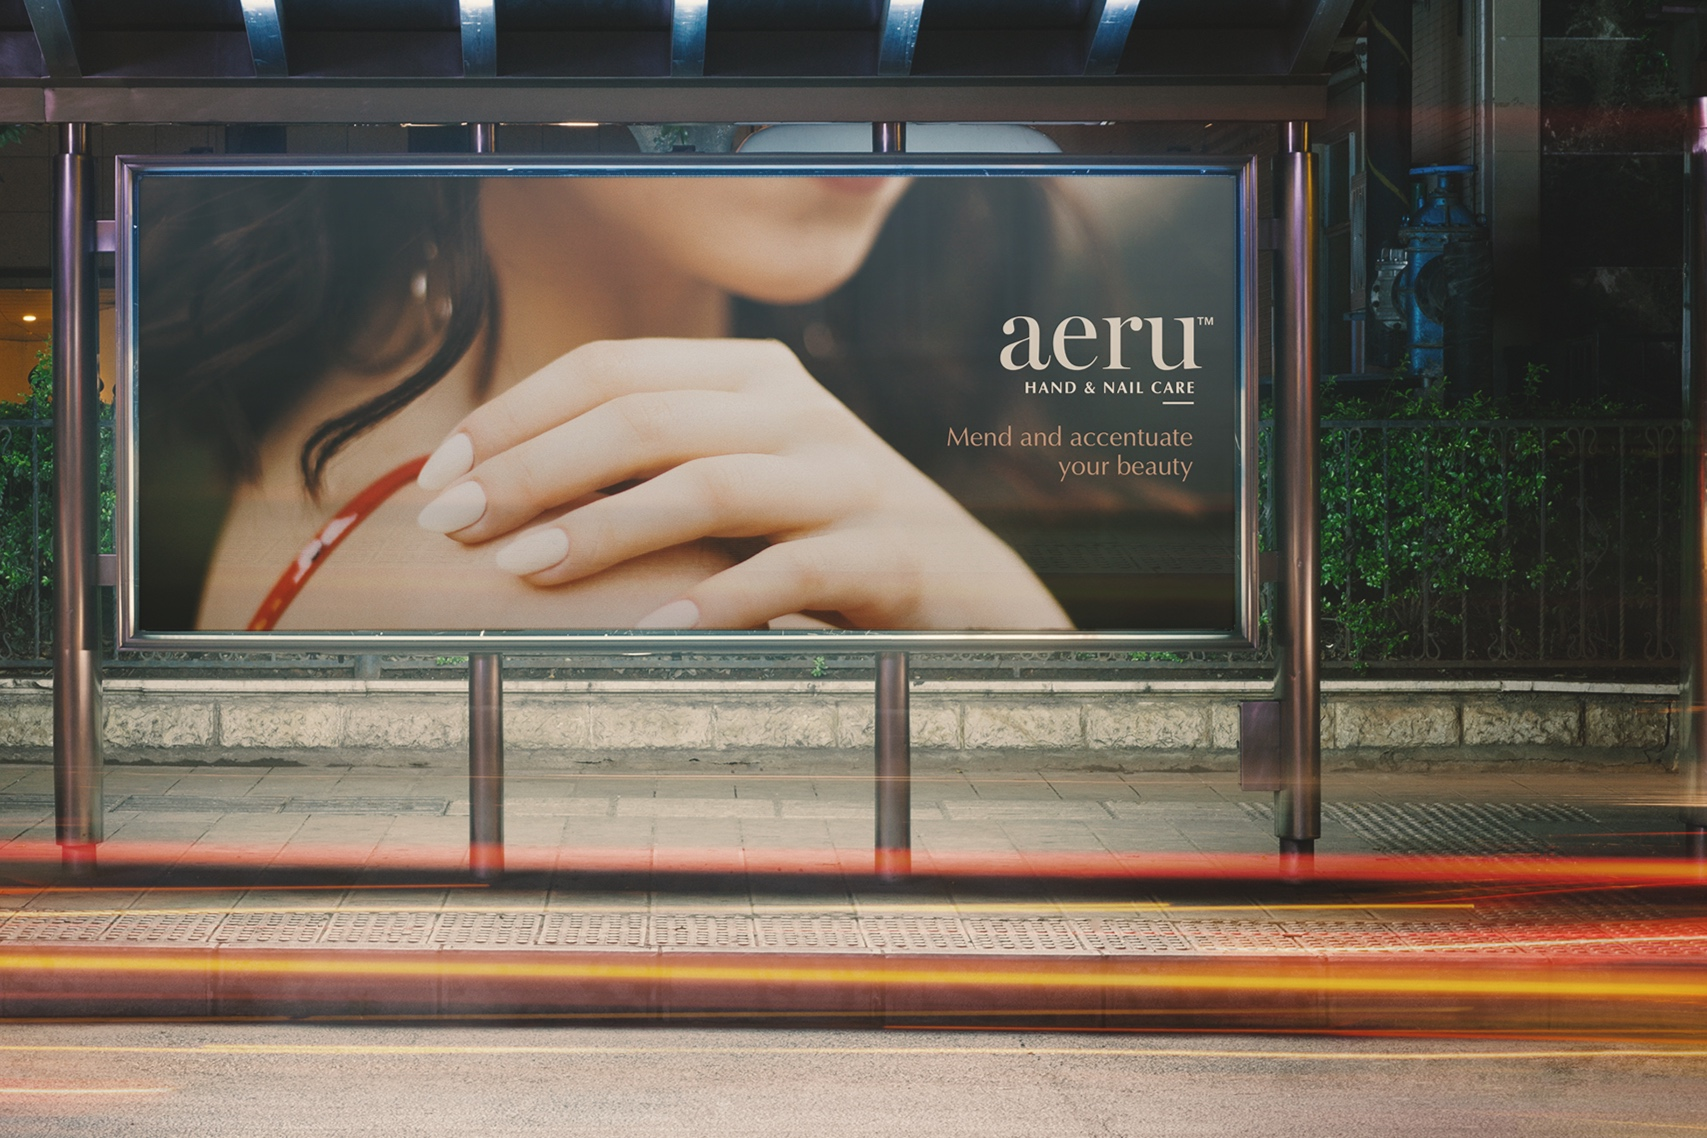 ADVERTISING - aeru™ will be sold in boutiques and specific retailers such as Bergdorf Goodman. aeru™ advertising will be heavily photo based and displayed strategically around upper income neighborhoods in urban settings.